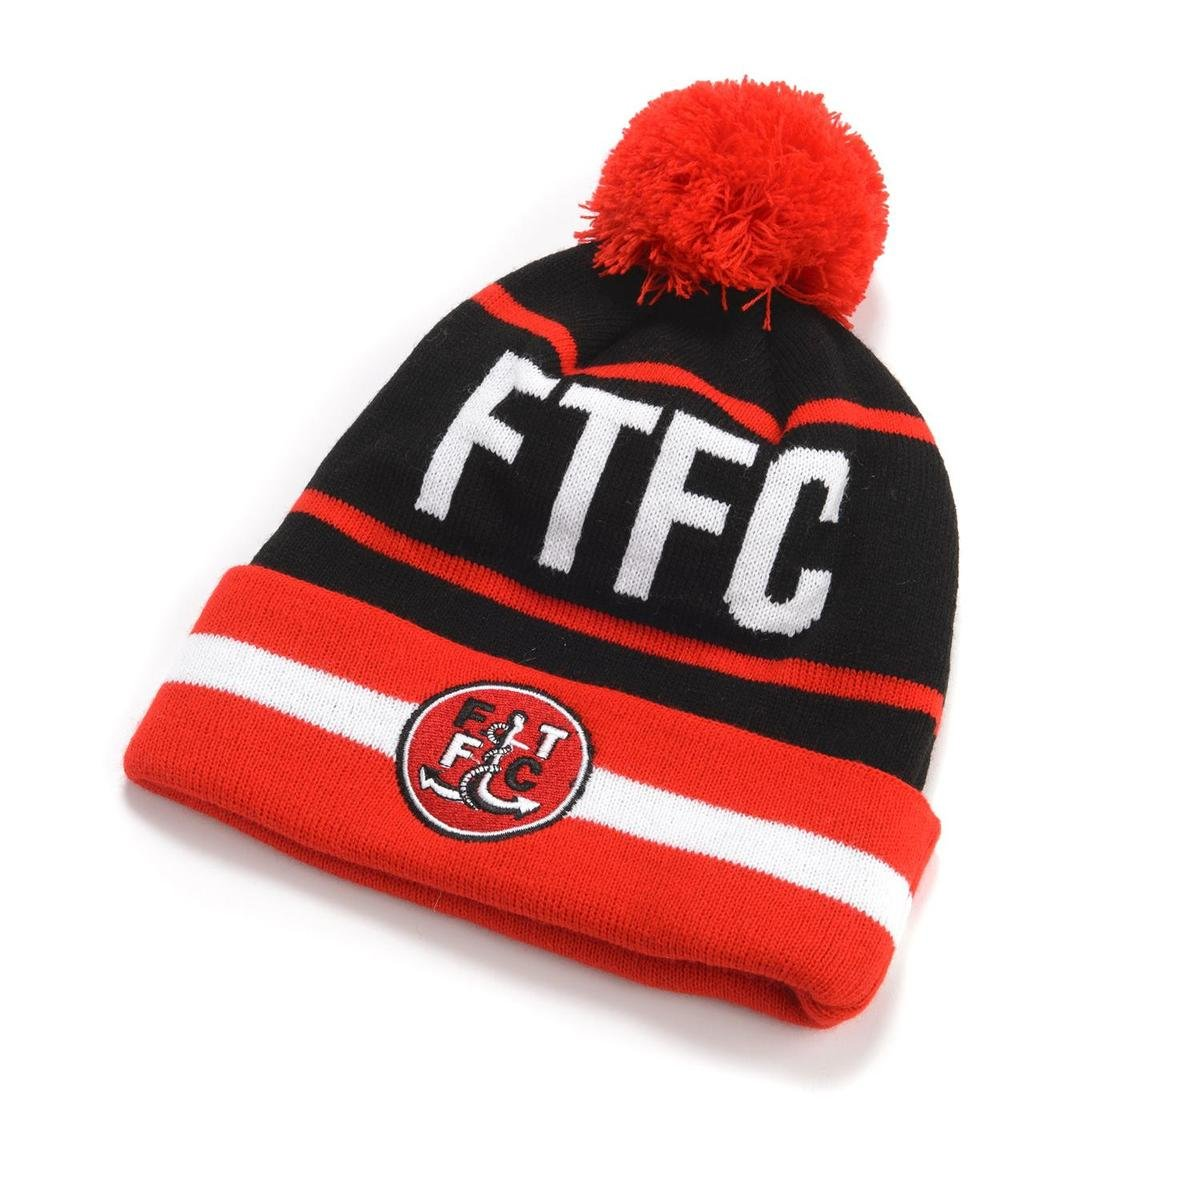 fleetwood-town-fc-bobble-hat-1590485257bobble-hat